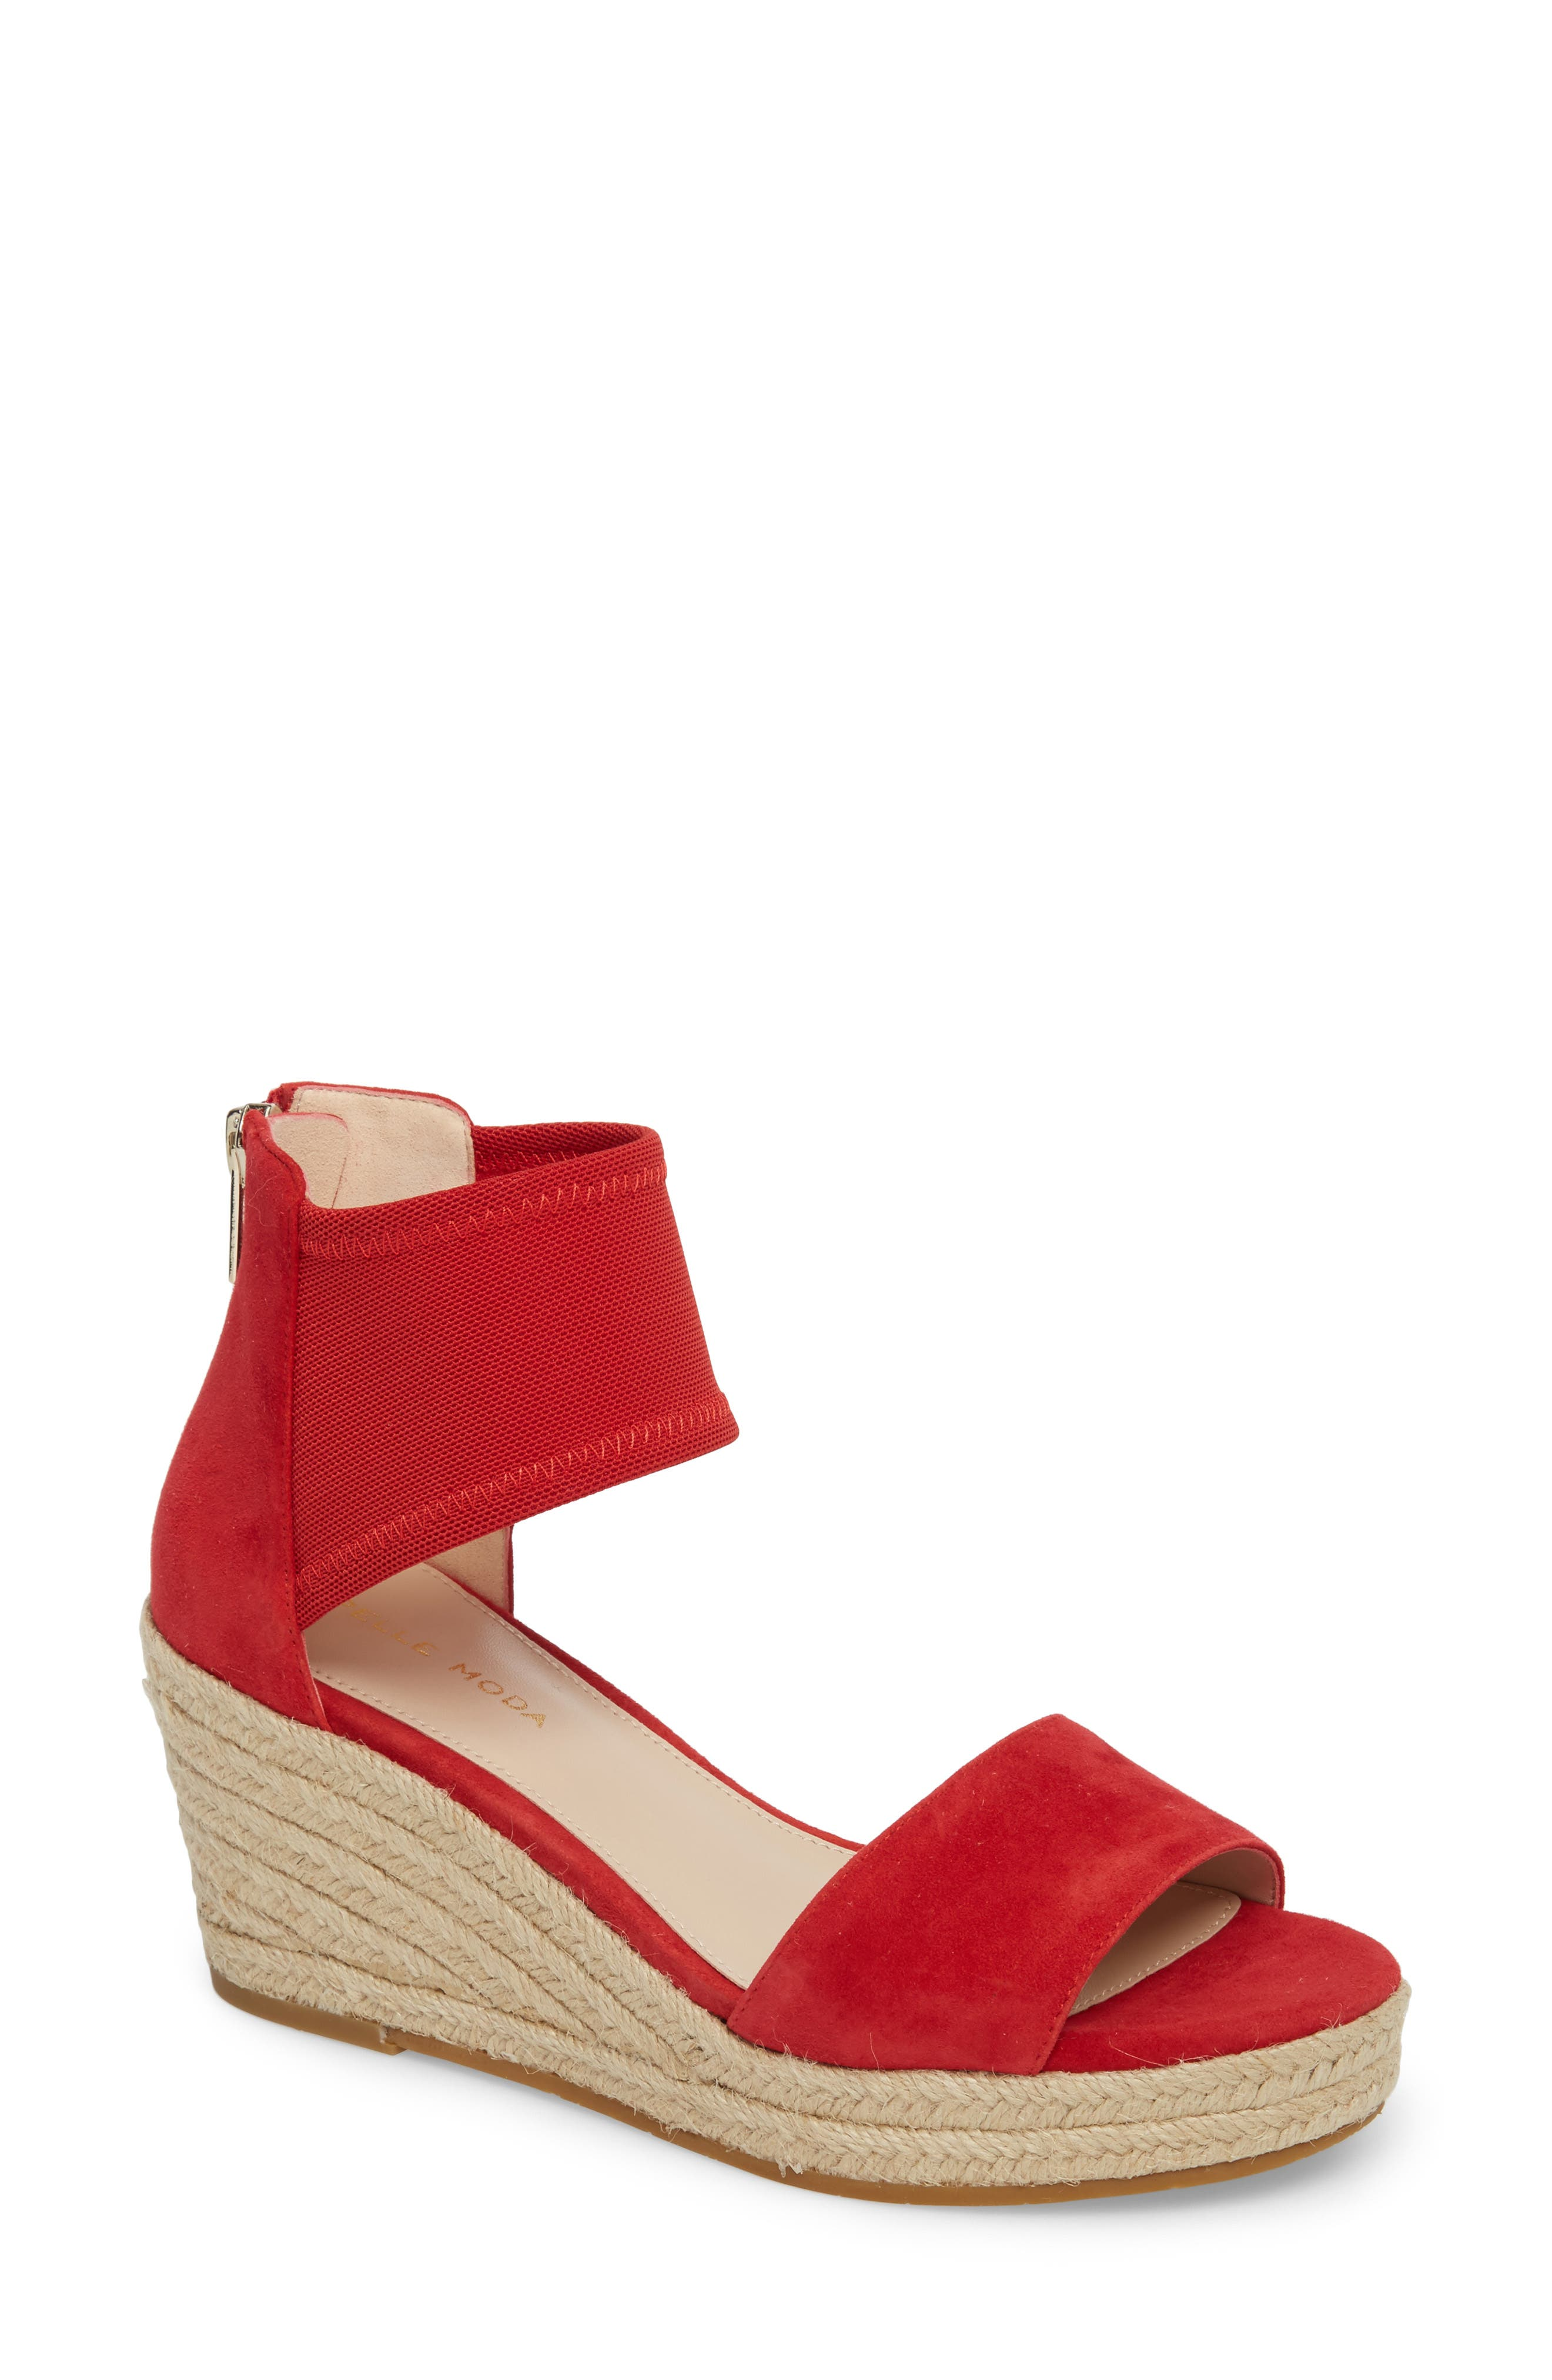 Alternate Image 1 Selected - Pelle Moda Kona Platform Wedge Sandal (Women)